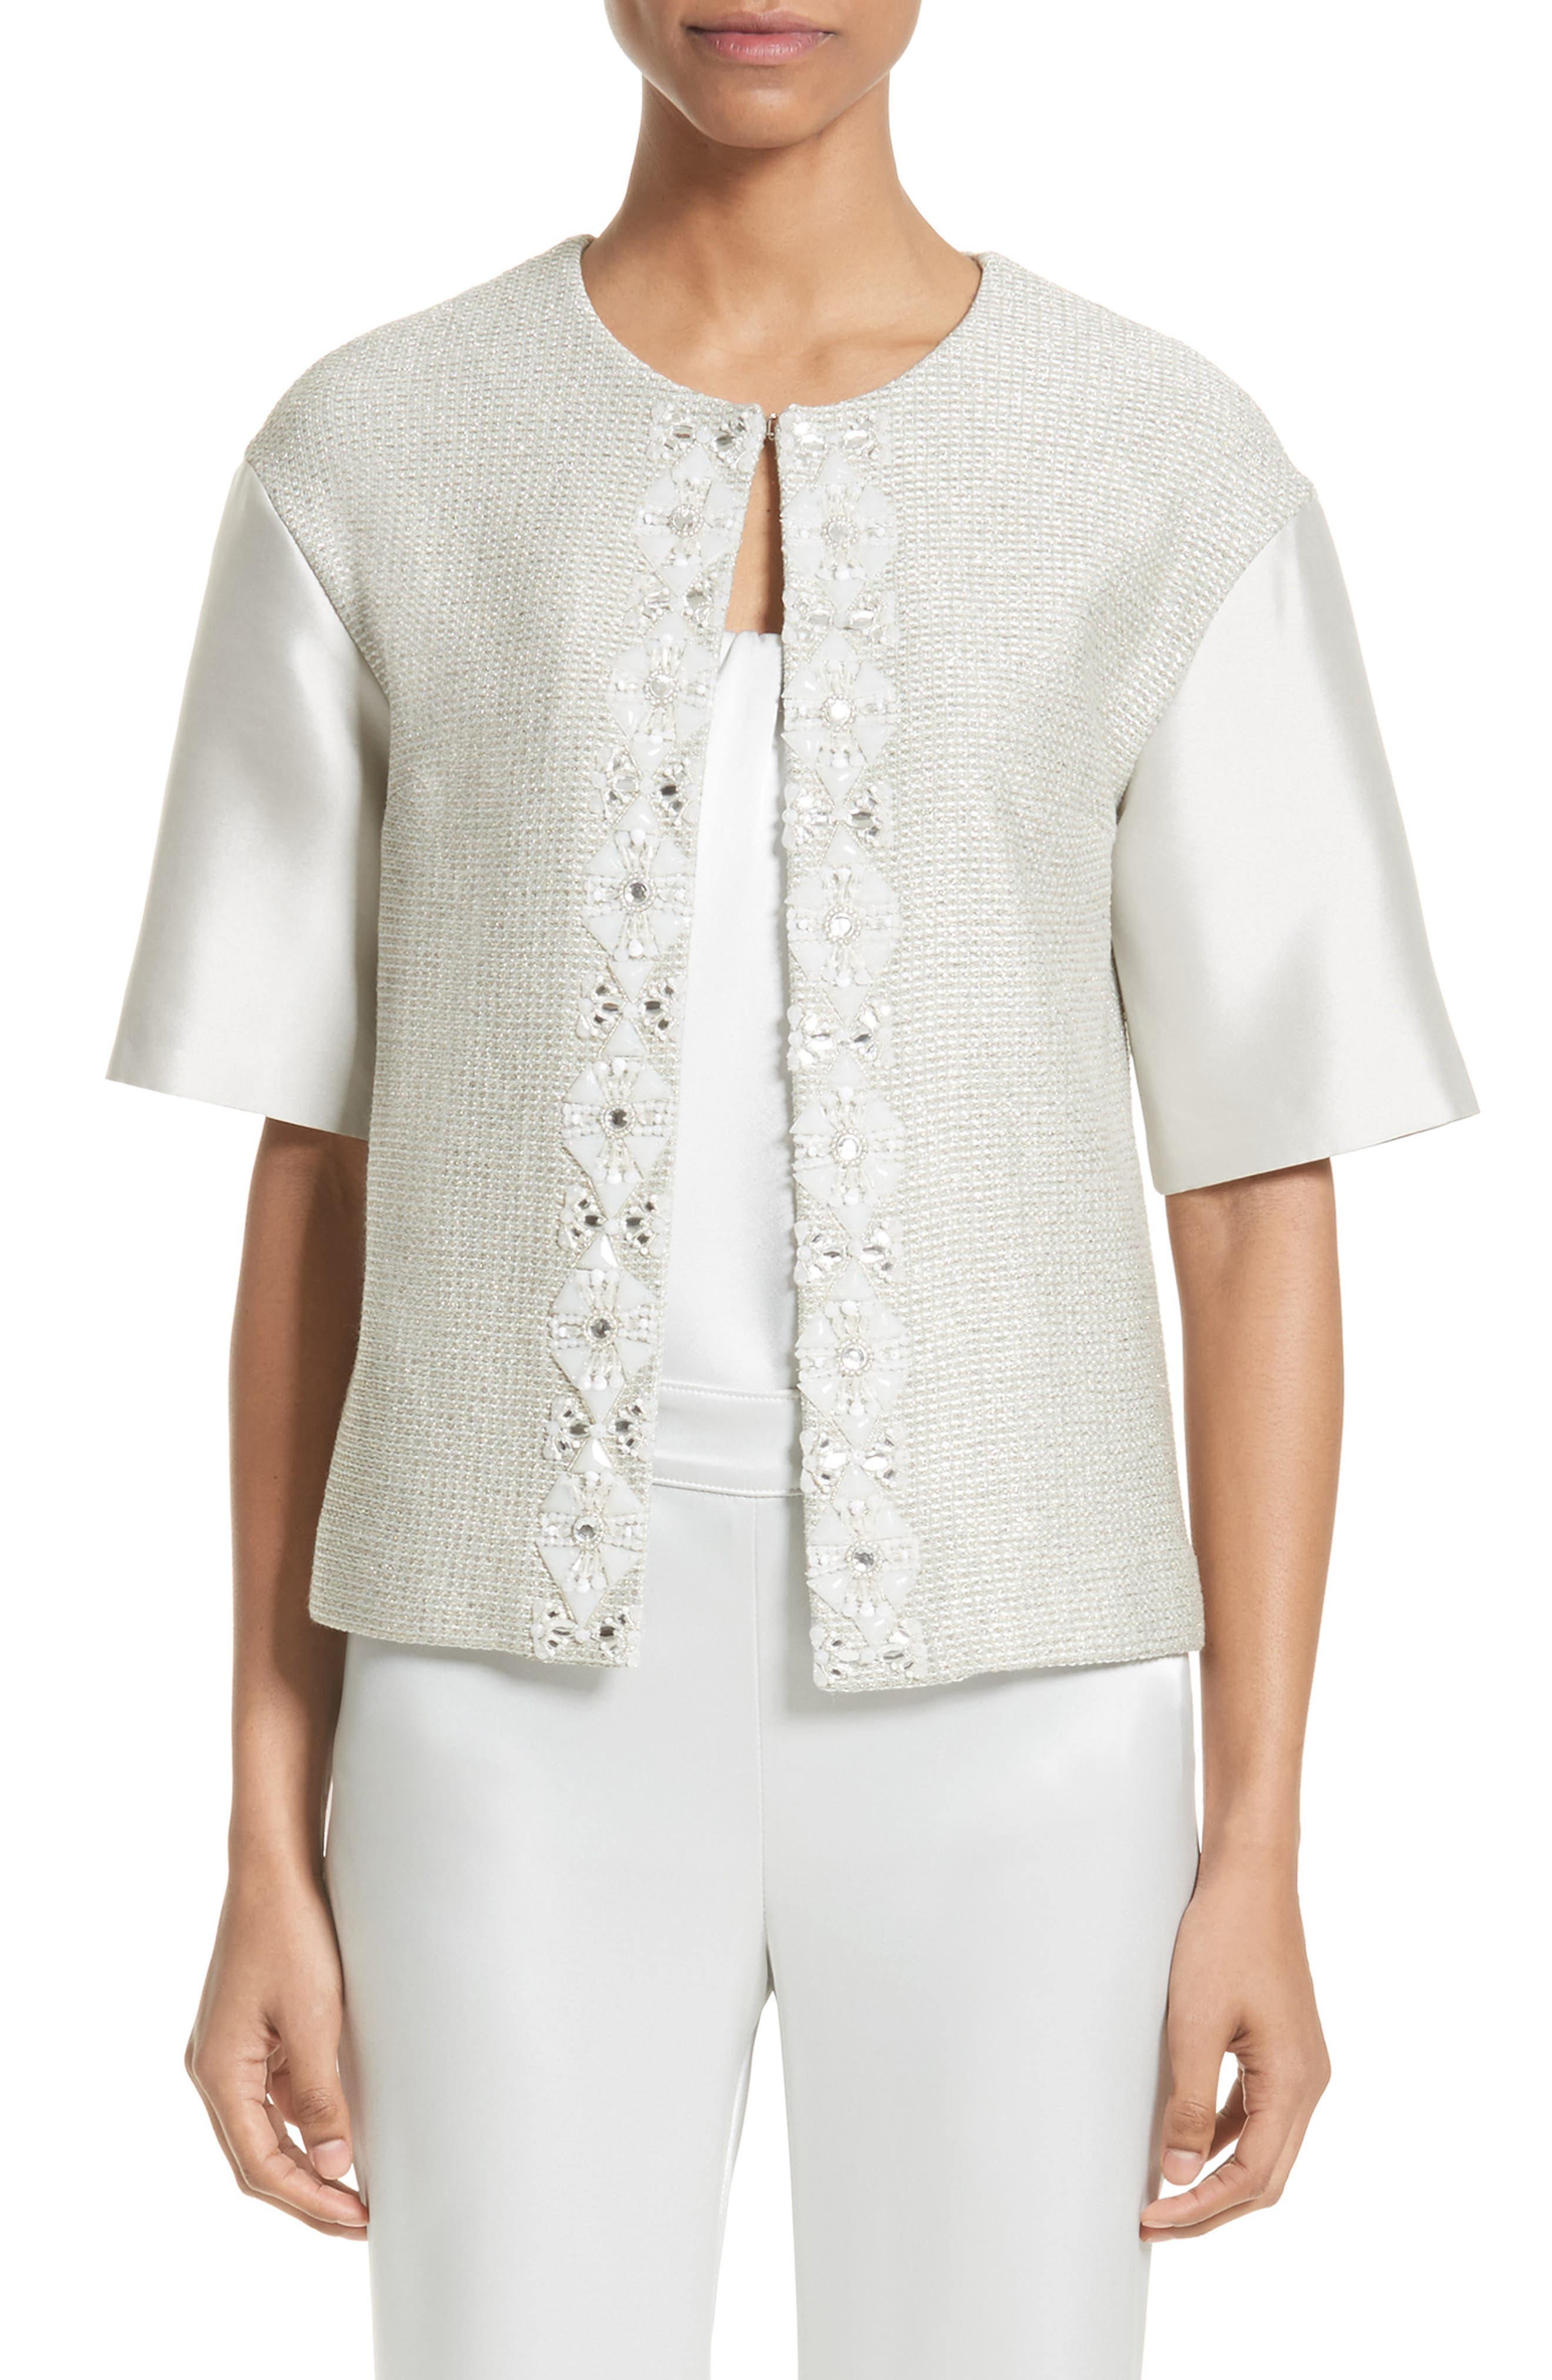 St. John Collection Beaded Jasmine Sparkle Knit Jacket